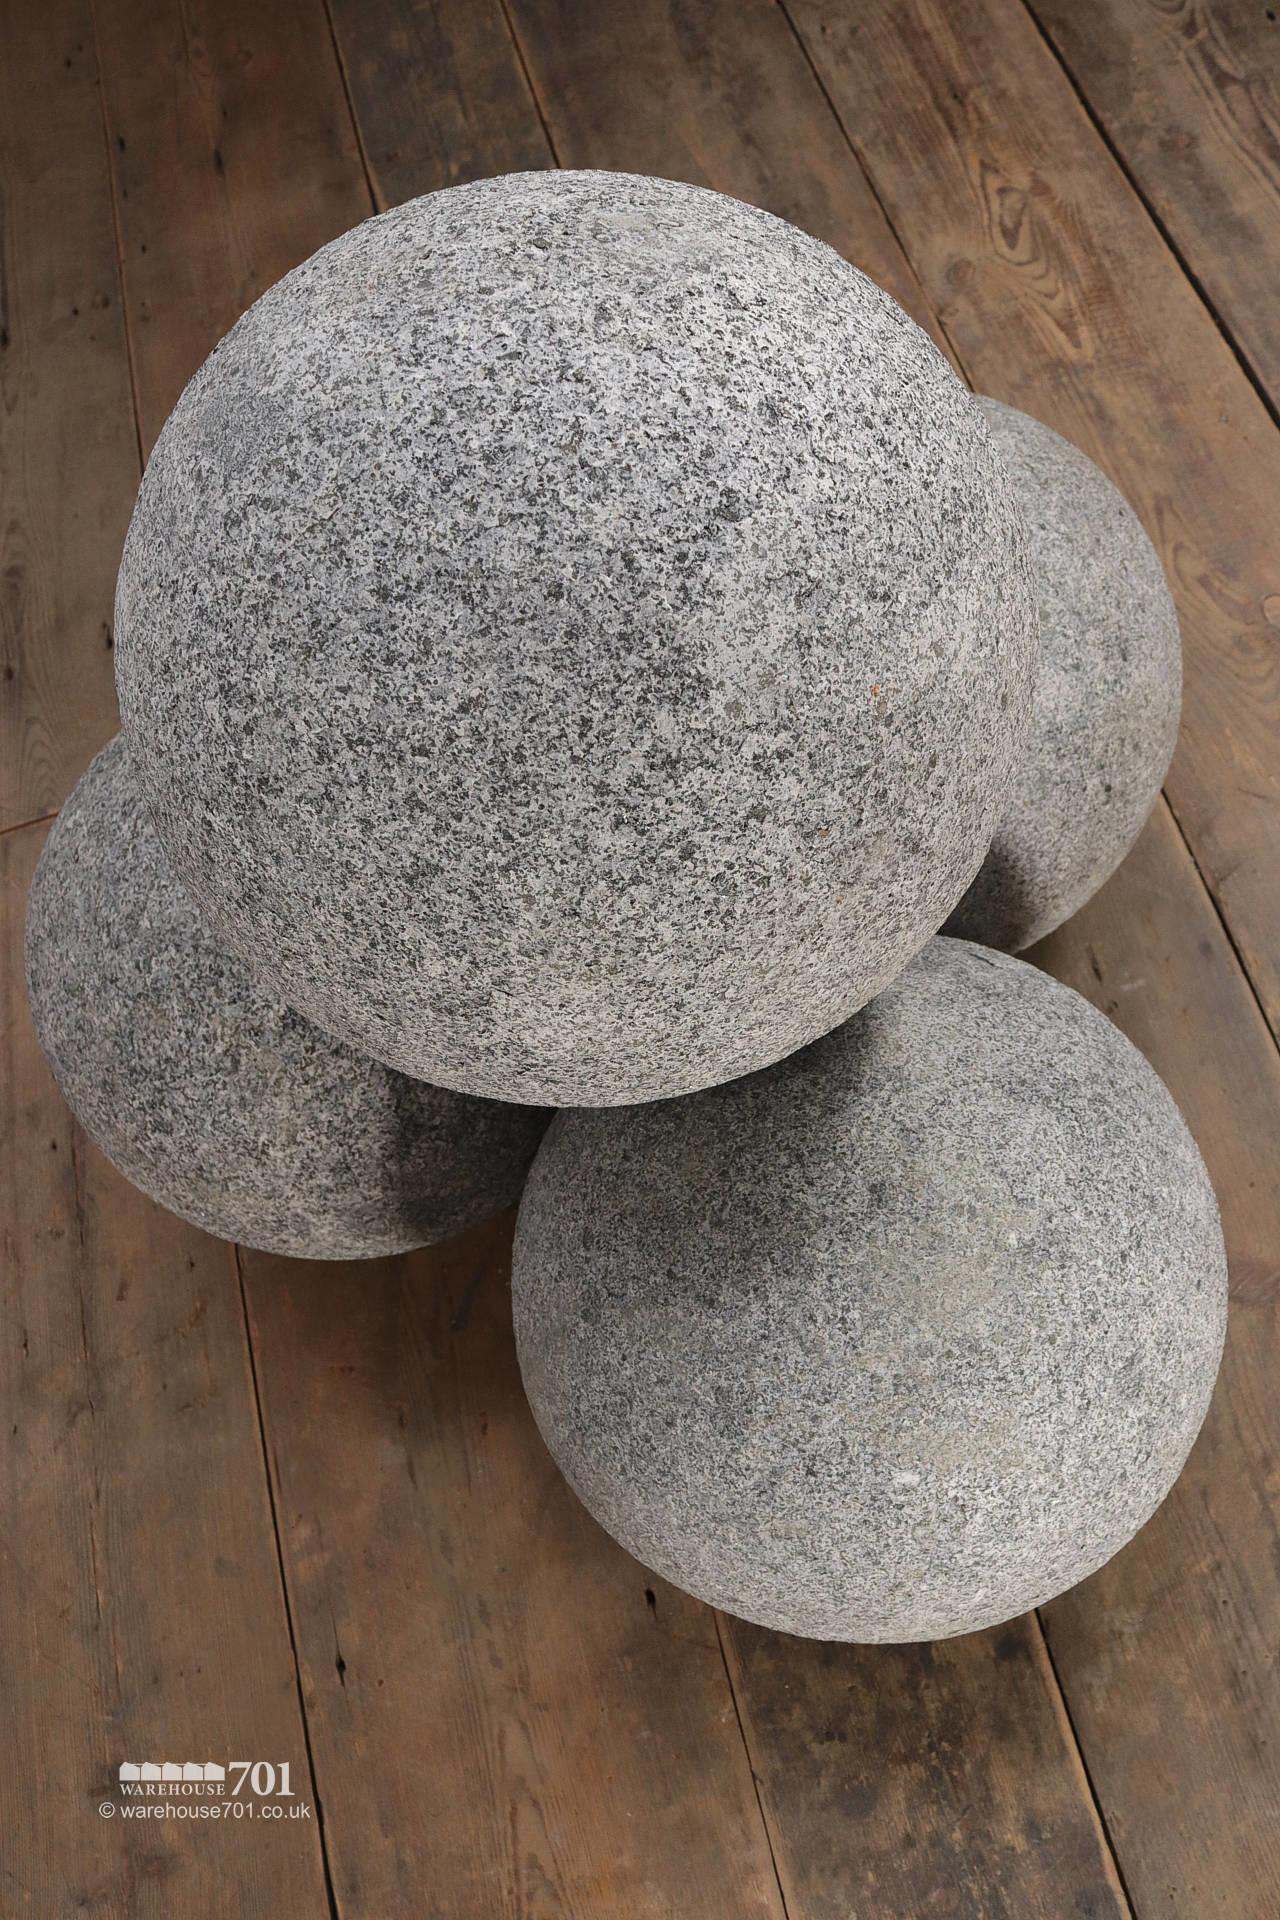 Granite Balls or Stone Spheres for Gate Pillars and Gardens #4